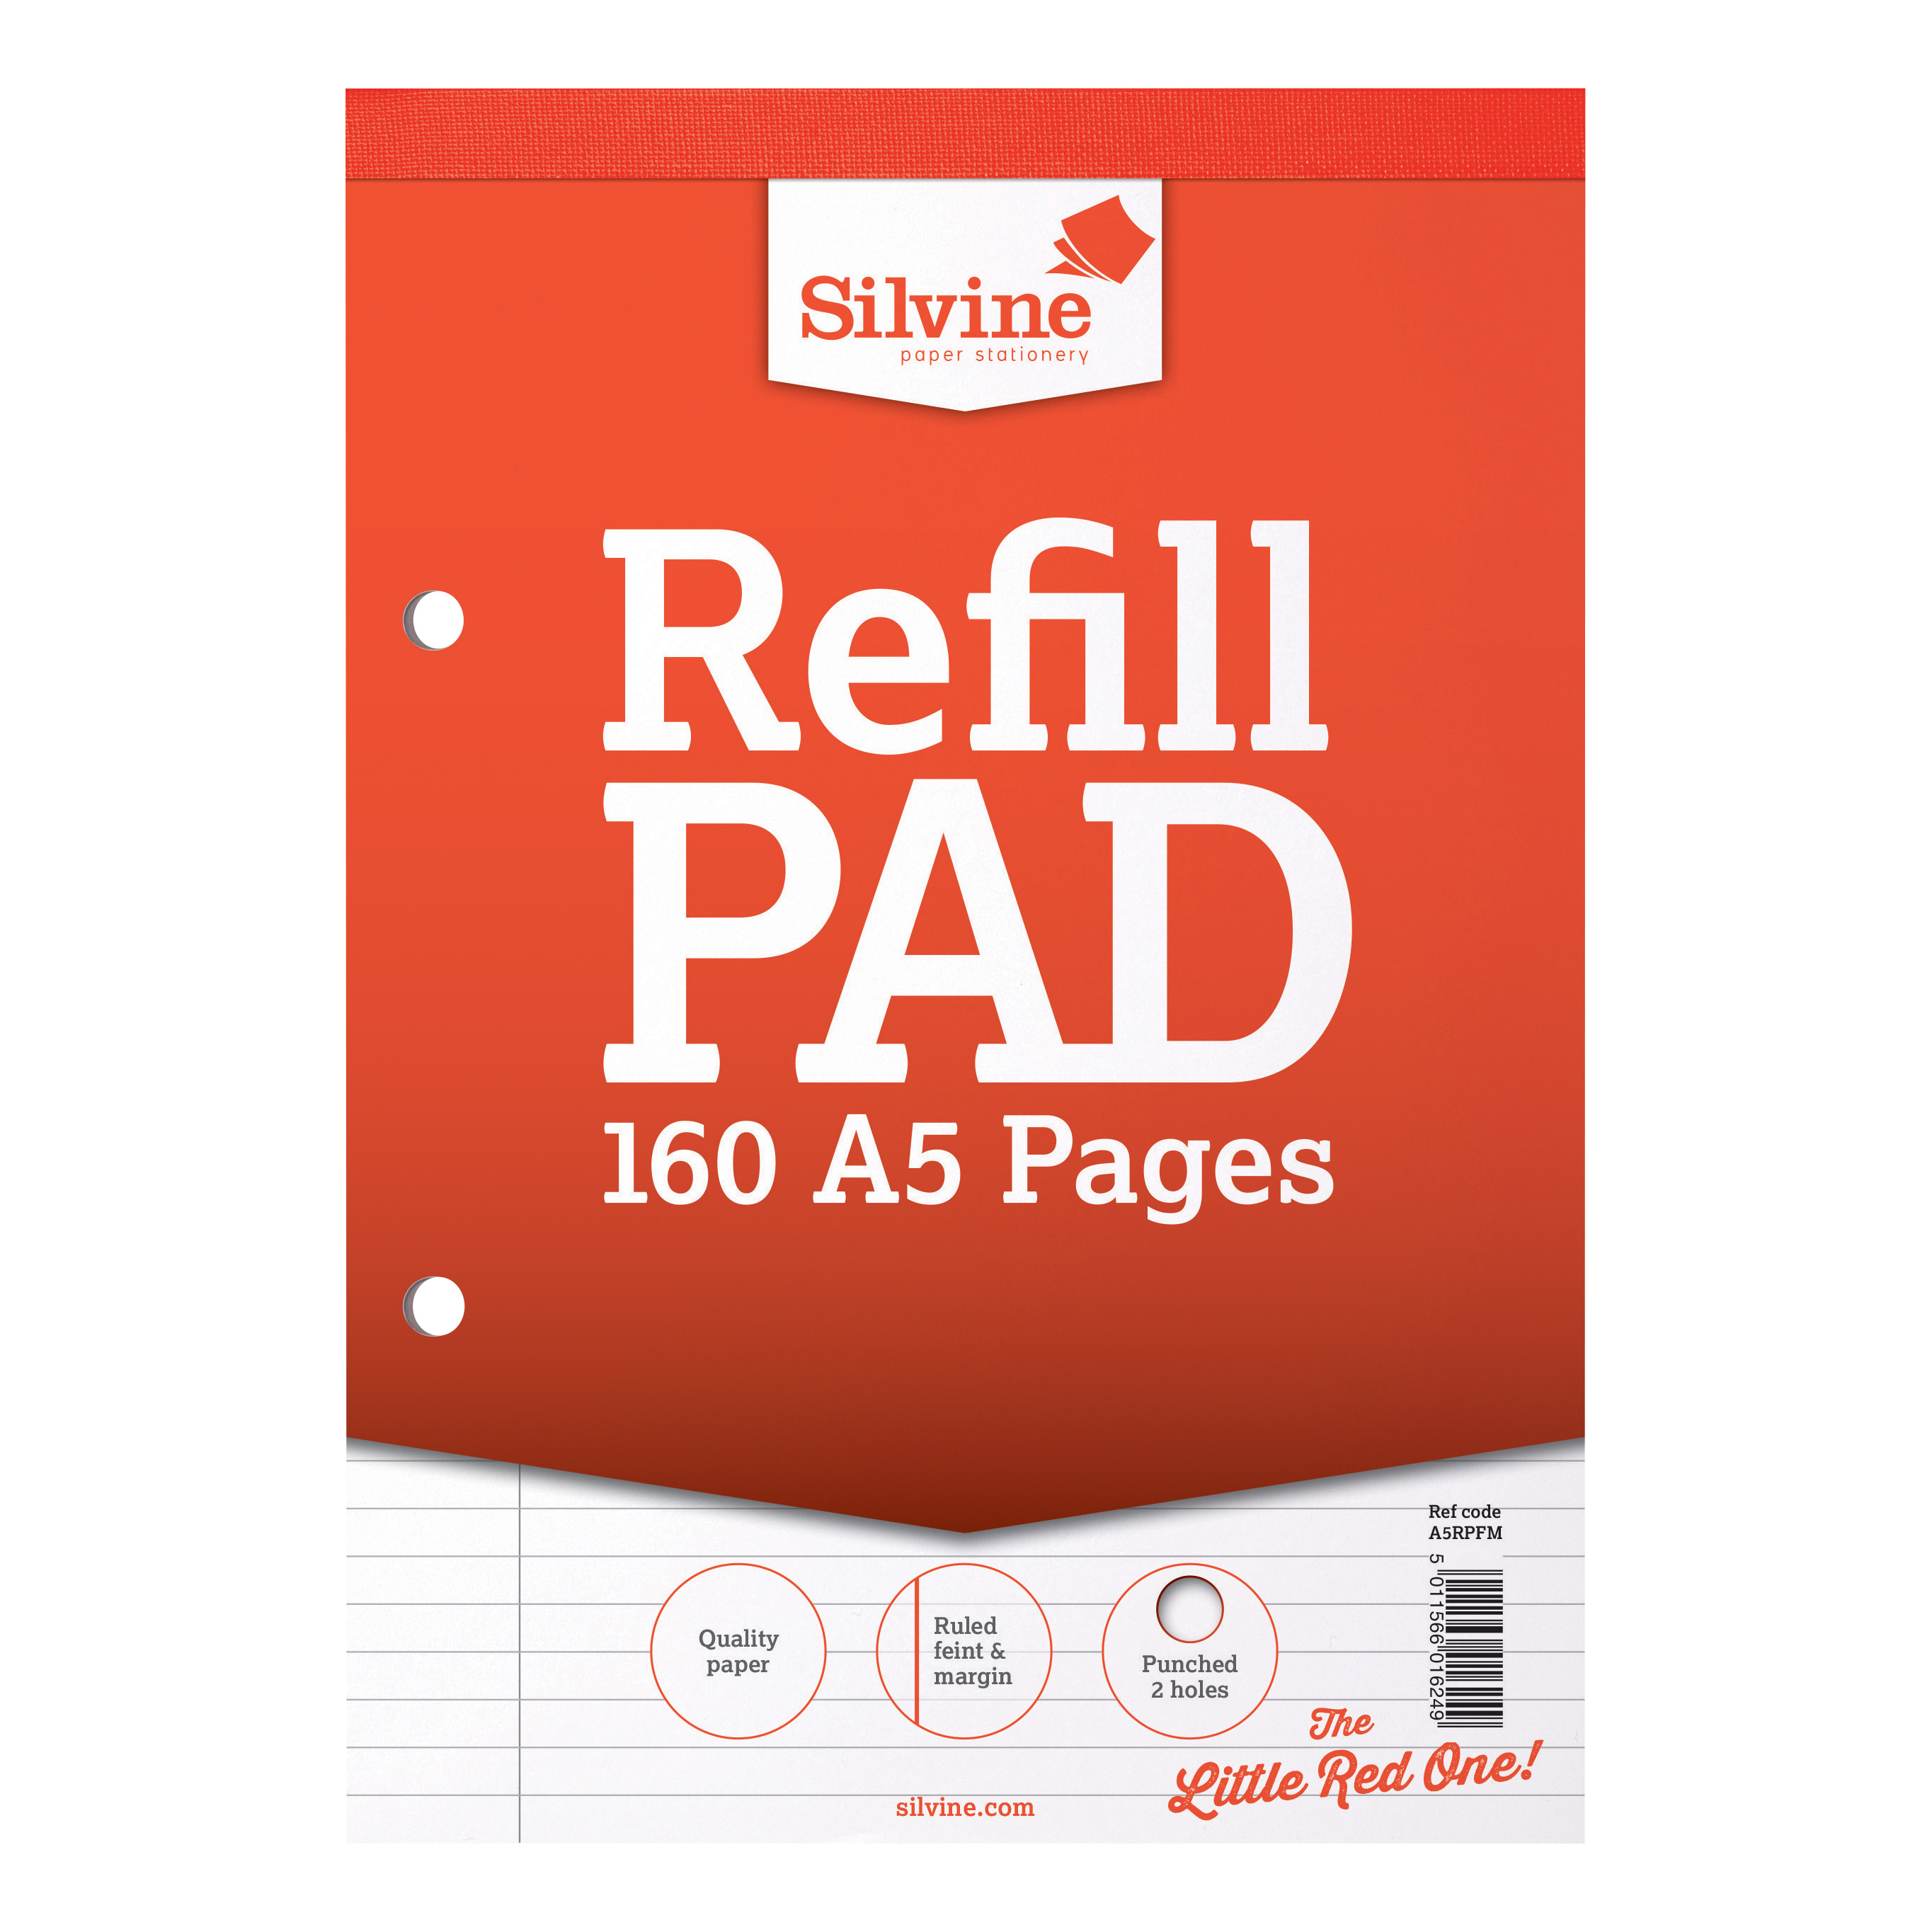 Silvine Refill Pad Headbound 75gsm Ruled Margin Perf Punched 2 Holes 160pp A5 Red Ref A5RPFM Pack 6